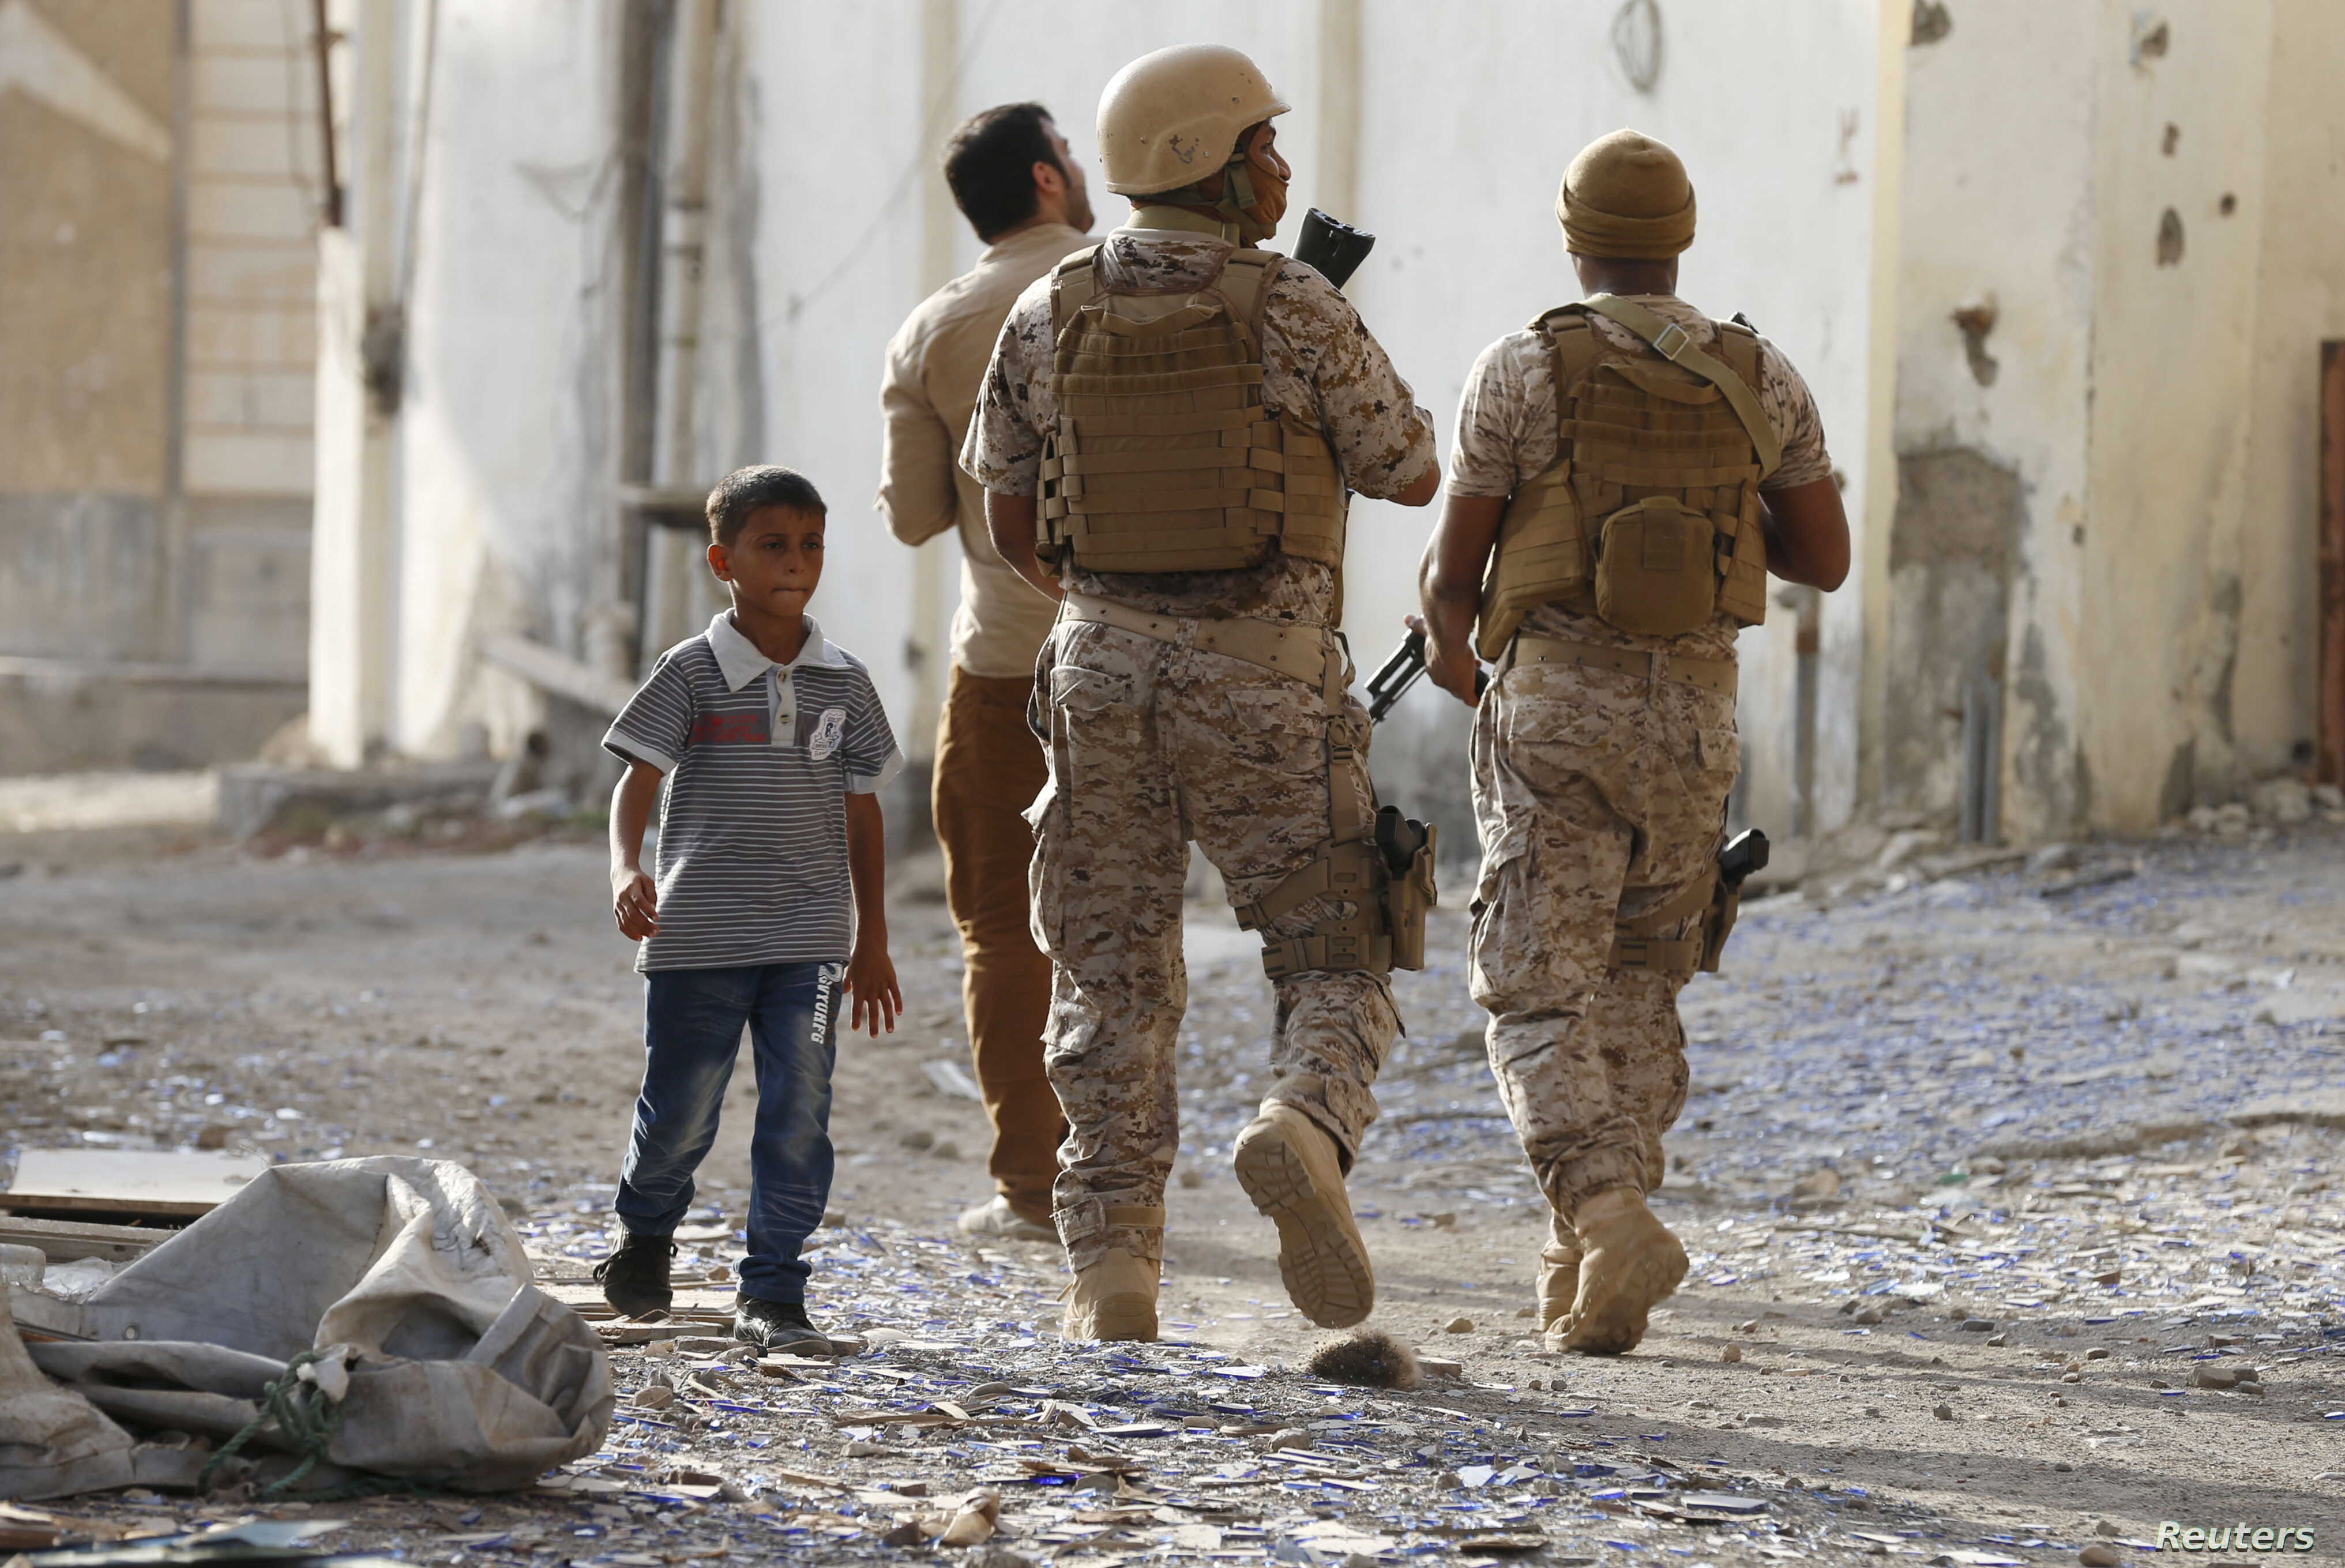 FILE - A boy walks past soldiers from the Saudi-led coalition patrolling a street in Yemen's southern port city of Aden, Sept. 26, 2015.